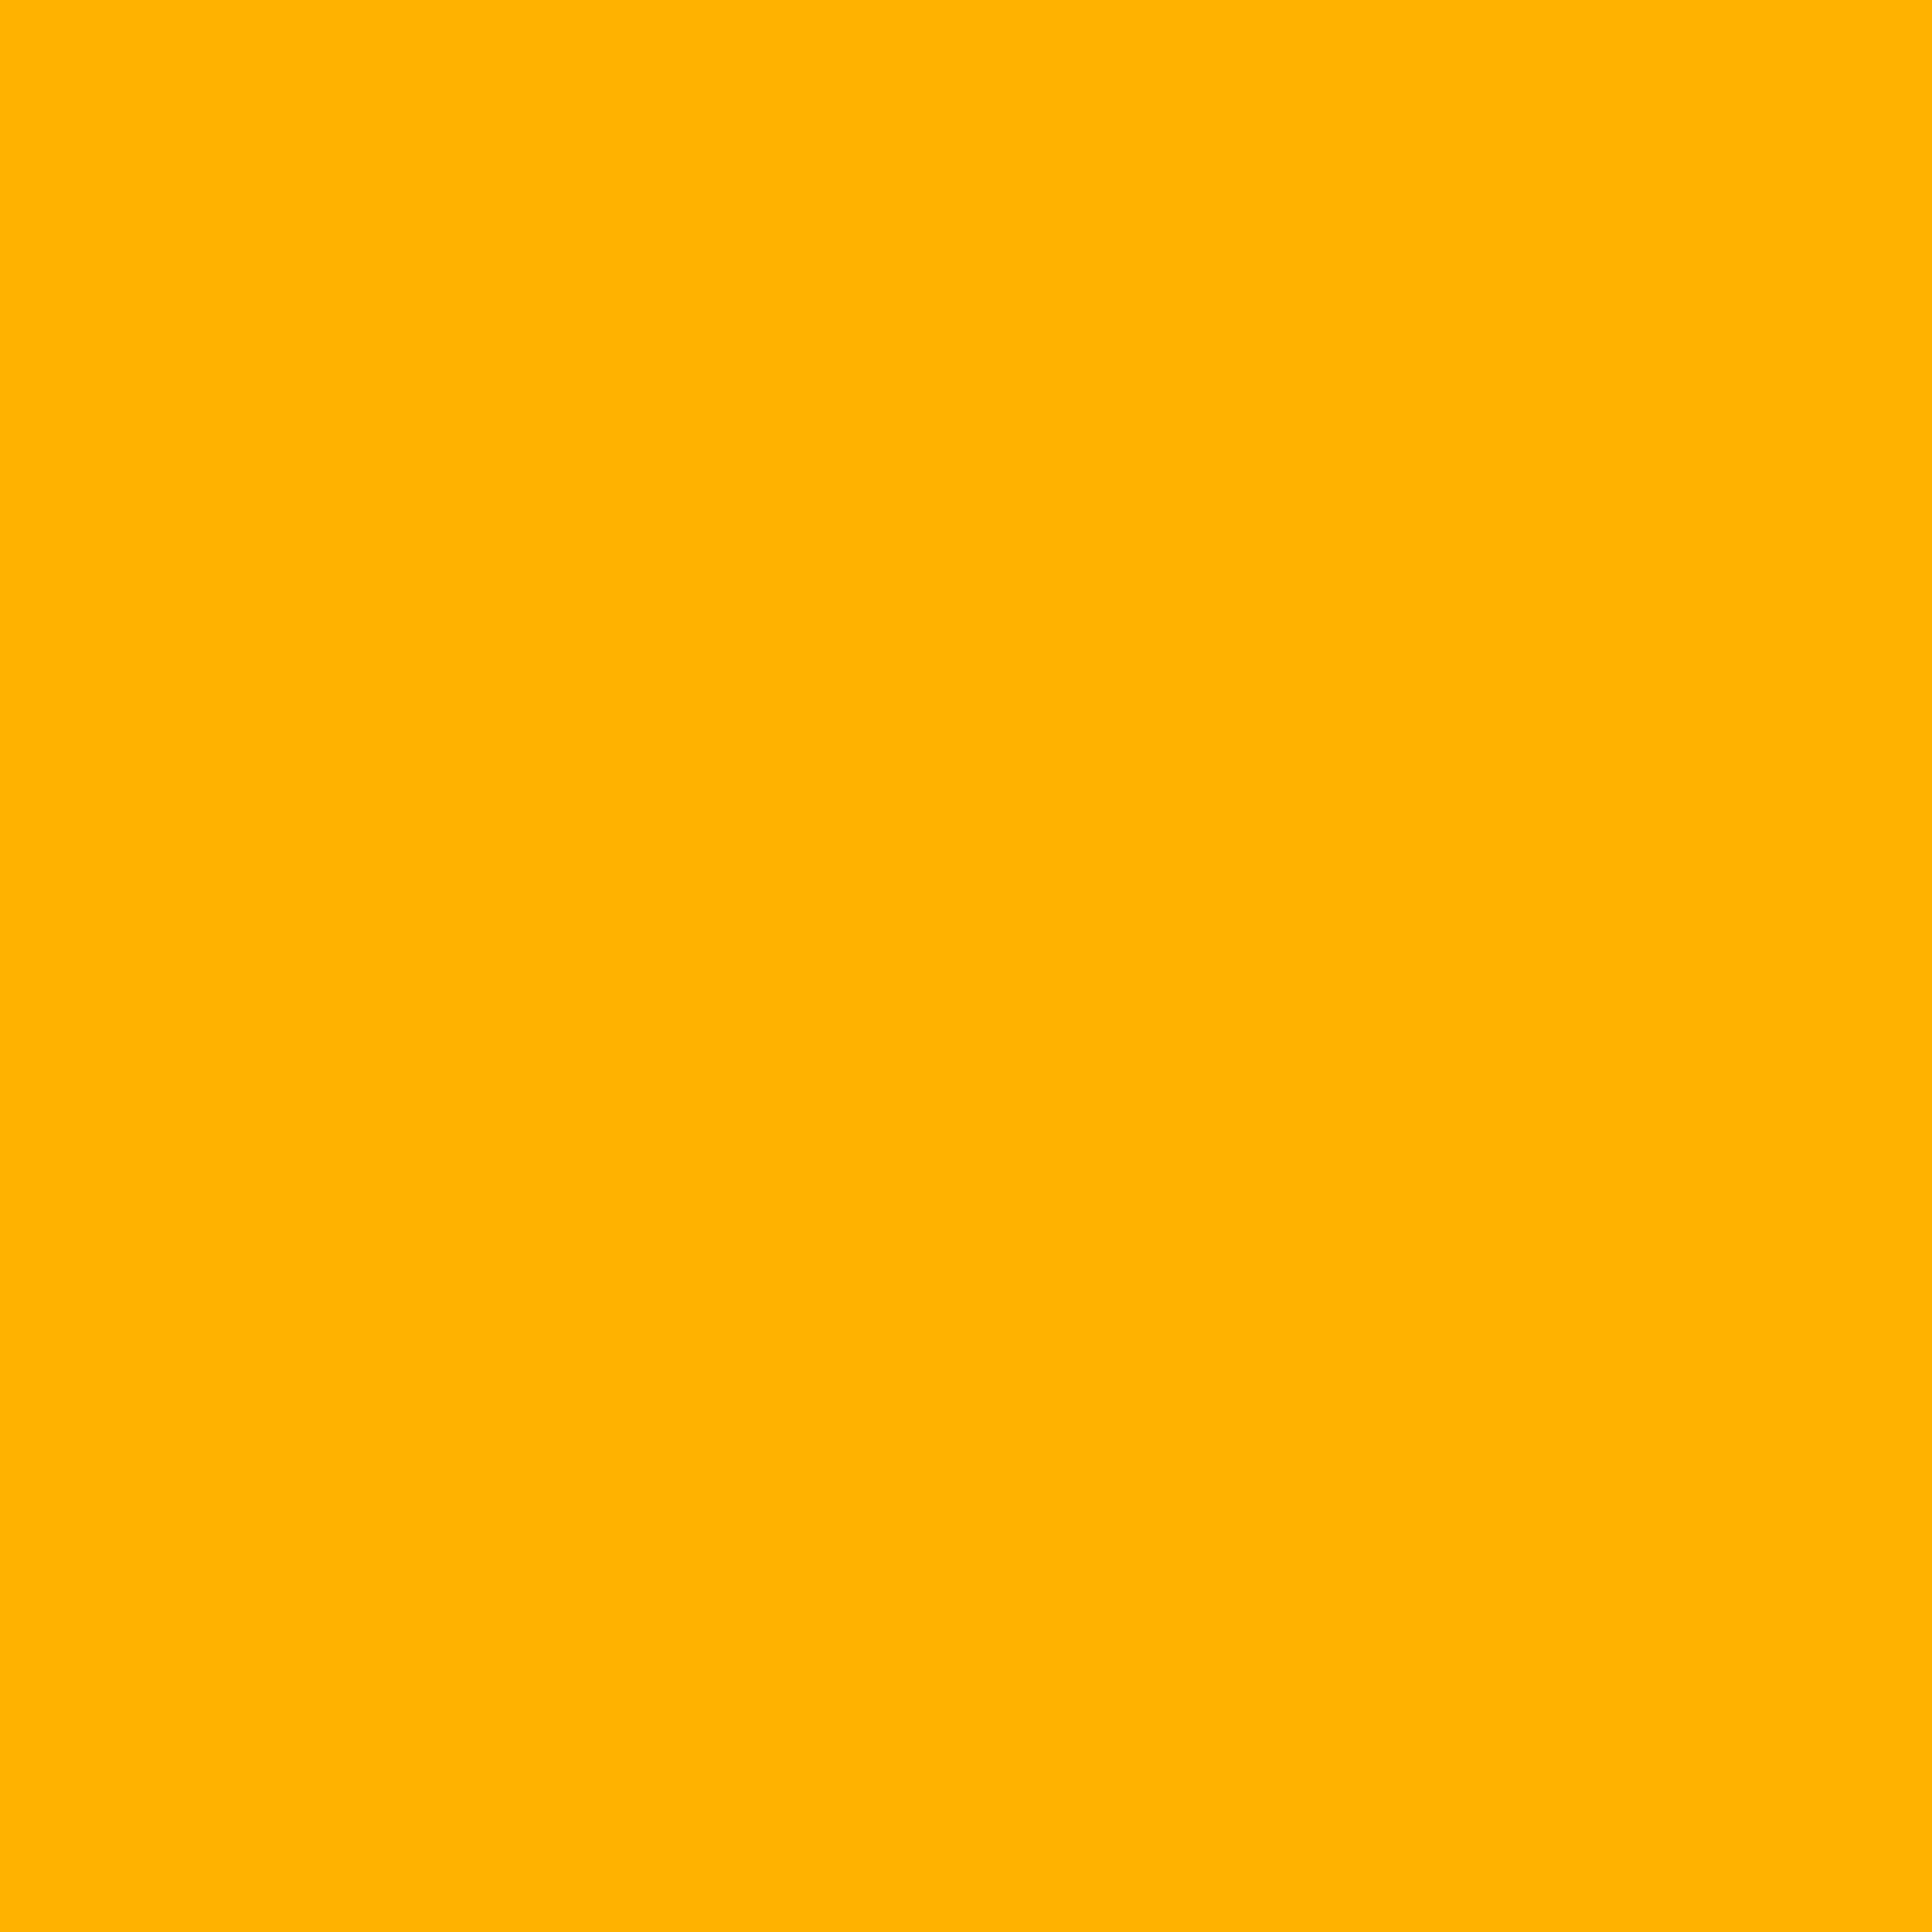 3600x3600 UCLA Gold Solid Color Background